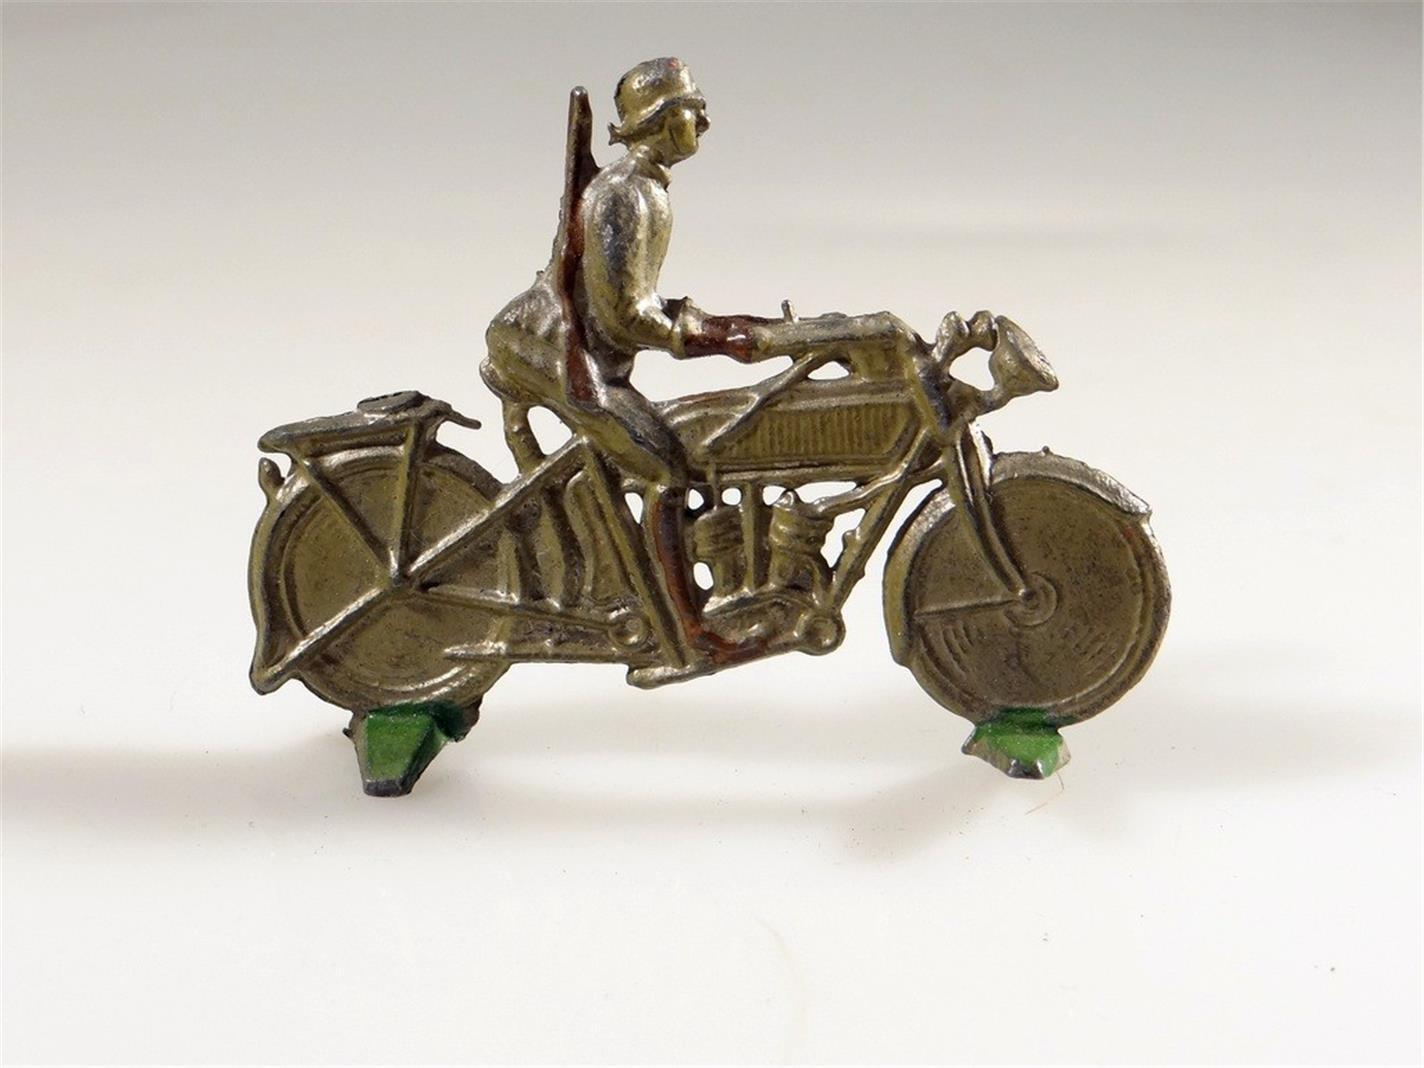 ANTIQUE CAST LEAD GERMAN ARMY MOTORCYCLE FIGURE